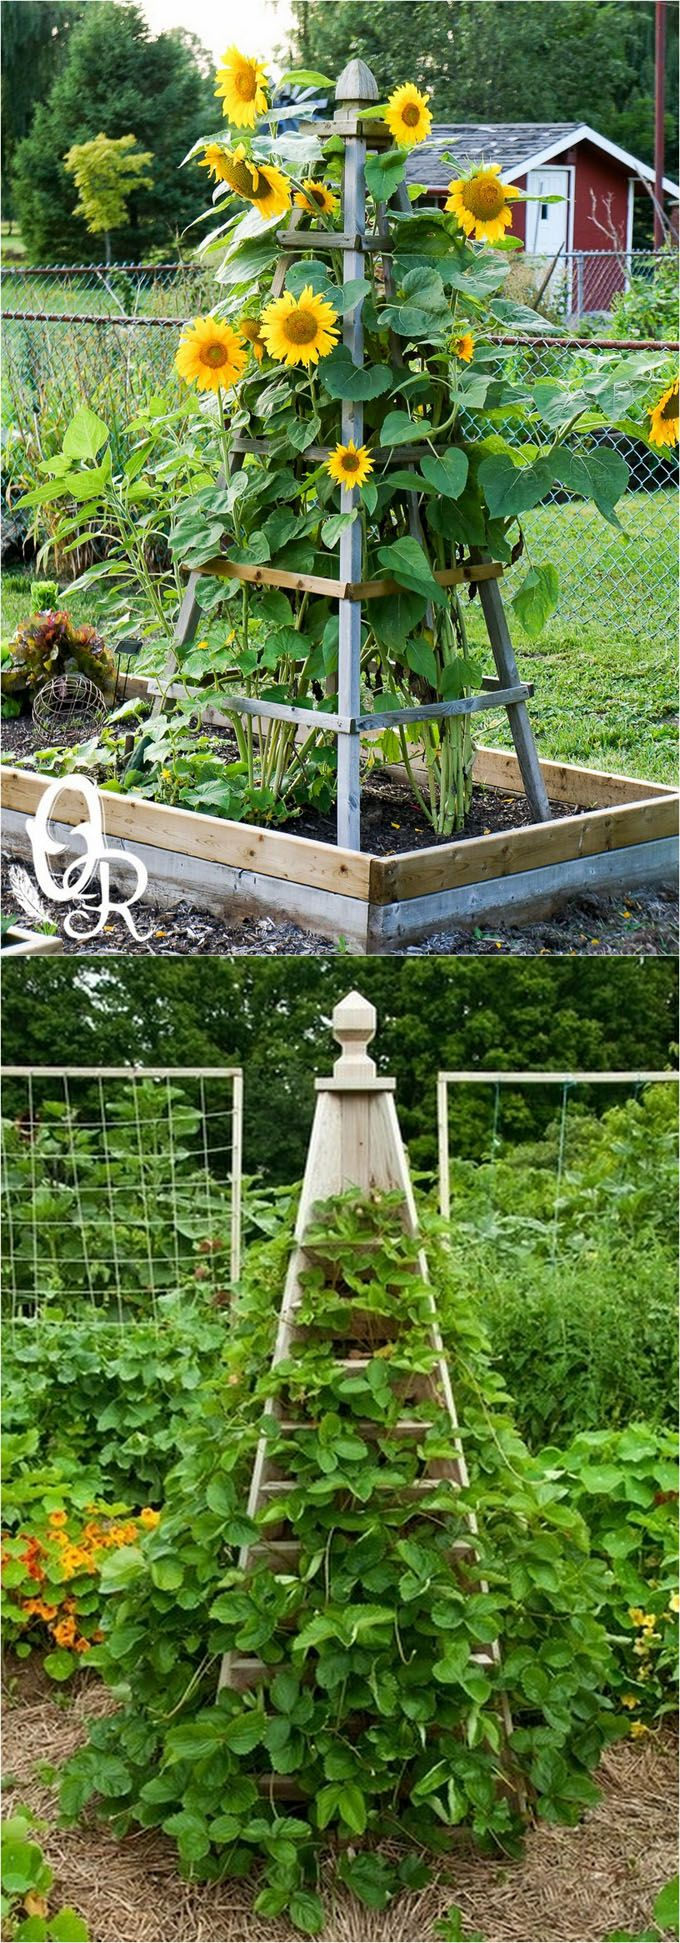 Rummy Easy Diy Garden Trellis Ideas Vertical Growing Structures A Piece Ofrainbow Easy Diy Garden Trellis Ideas Vertical Growing Structures Diy Garden Structures Ideas garden Garden Structures Ideas